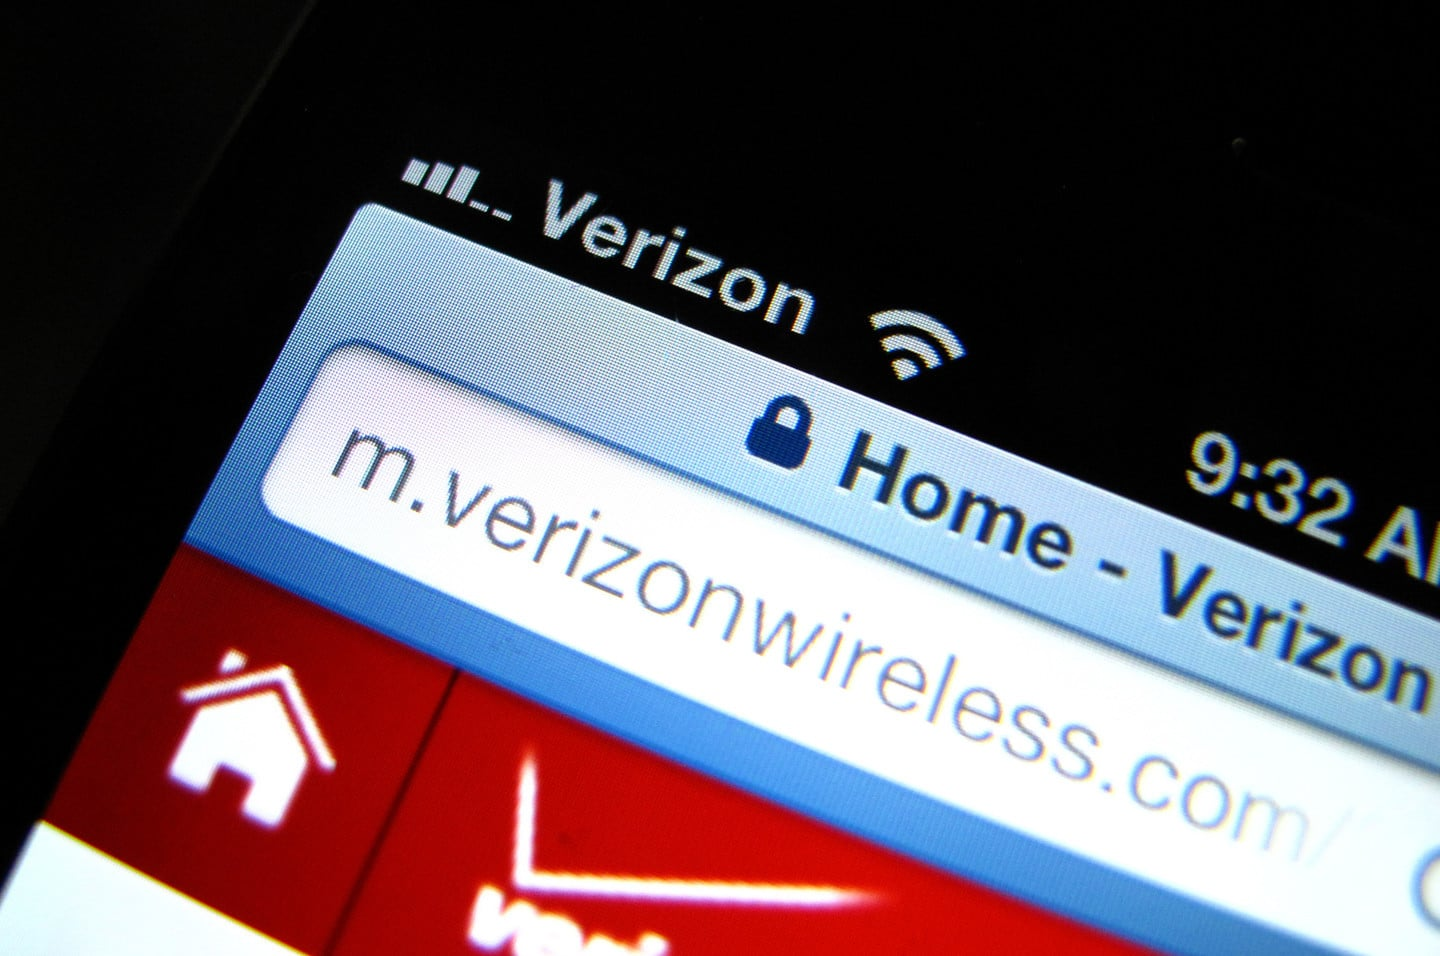 Mobile customers claim Verizon capped Netflix and YouTube speeds